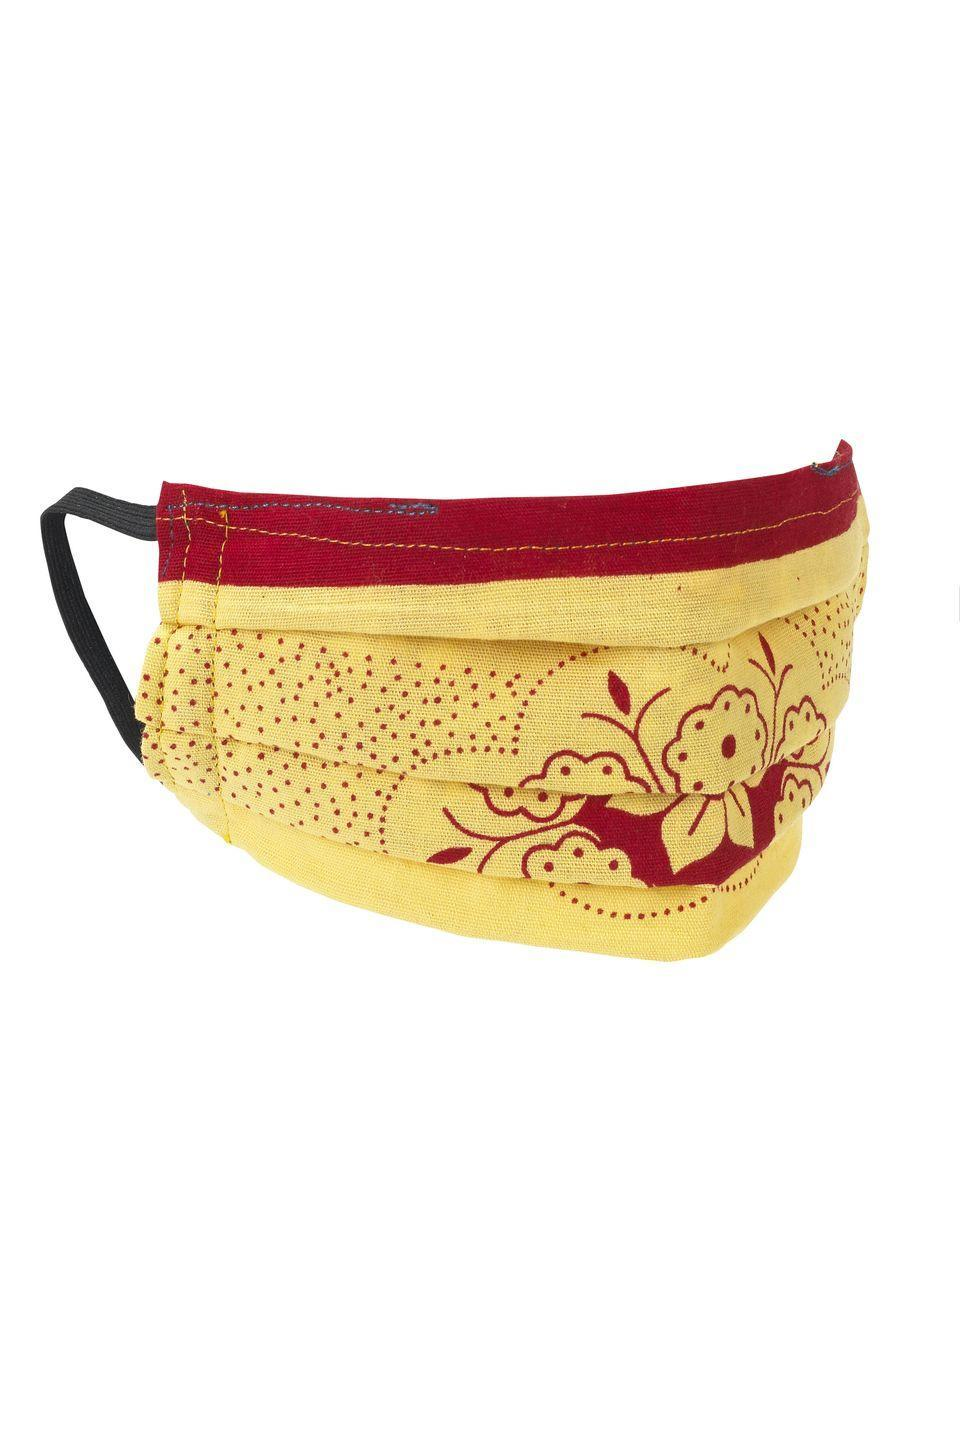 """<p><a class=""""link rapid-noclick-resp"""" href=""""https://sojustshop.com/products/yellow-and-red-non-medical-pleated-face-mask"""" rel=""""nofollow noopener"""" target=""""_blank"""" data-ylk=""""slk:SHOP NOW"""">SHOP NOW</a></p><p>So Just Shop is a sustainable lifestyle brand that curates ethically-made, environmentally-friendly accessories and homeware. Its face masks are each handmade from up-cycled fabric in either cotton or silk, with African prints or Indian sari fabric. No two are the same, so expect truly unique designs.</p><p>£14.99, <a href=""""https://sojustshop.com/products/yellow-and-red-non-medical-pleated-face-mask"""" rel=""""nofollow noopener"""" target=""""_blank"""" data-ylk=""""slk:So Just Shop"""" class=""""link rapid-noclick-resp"""">So Just Shop</a></p>"""